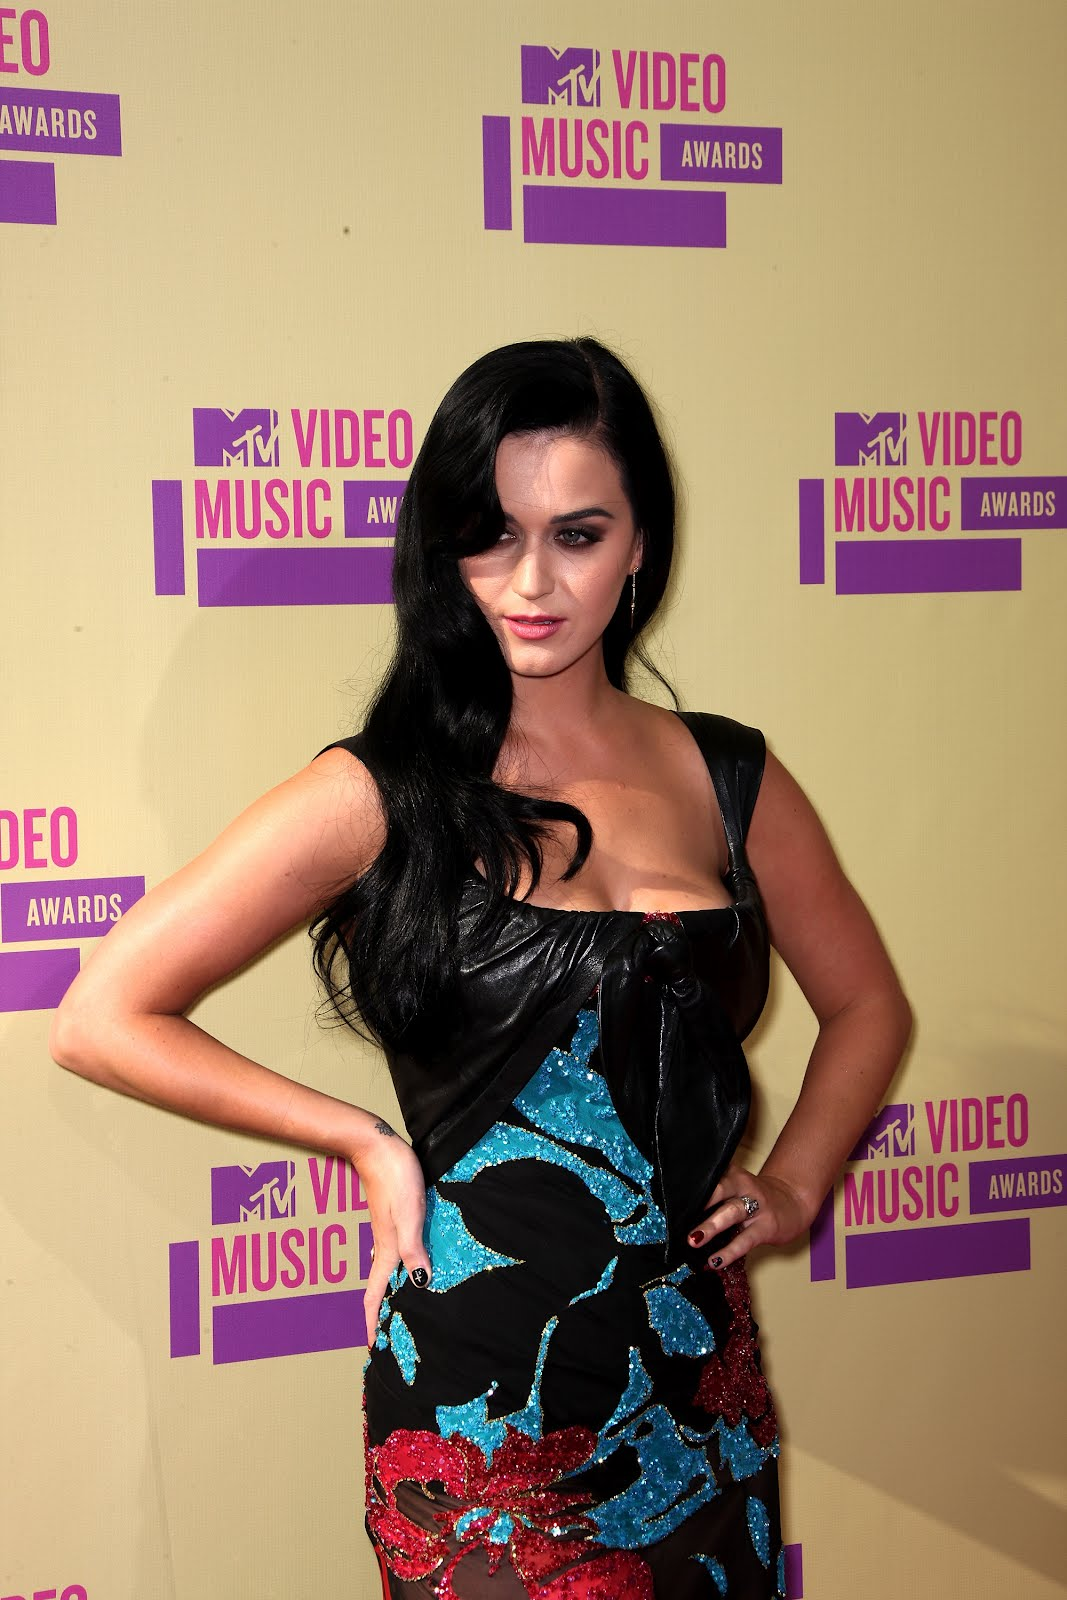 http://4.bp.blogspot.com/-6fD08OEwu9w/UEleUWnfaDI/AAAAAAAAMwA/e2BrWdfVQfE/s1600/Katy-Perry-en-MTV-Video-Music-Awards-2012-1.JPG